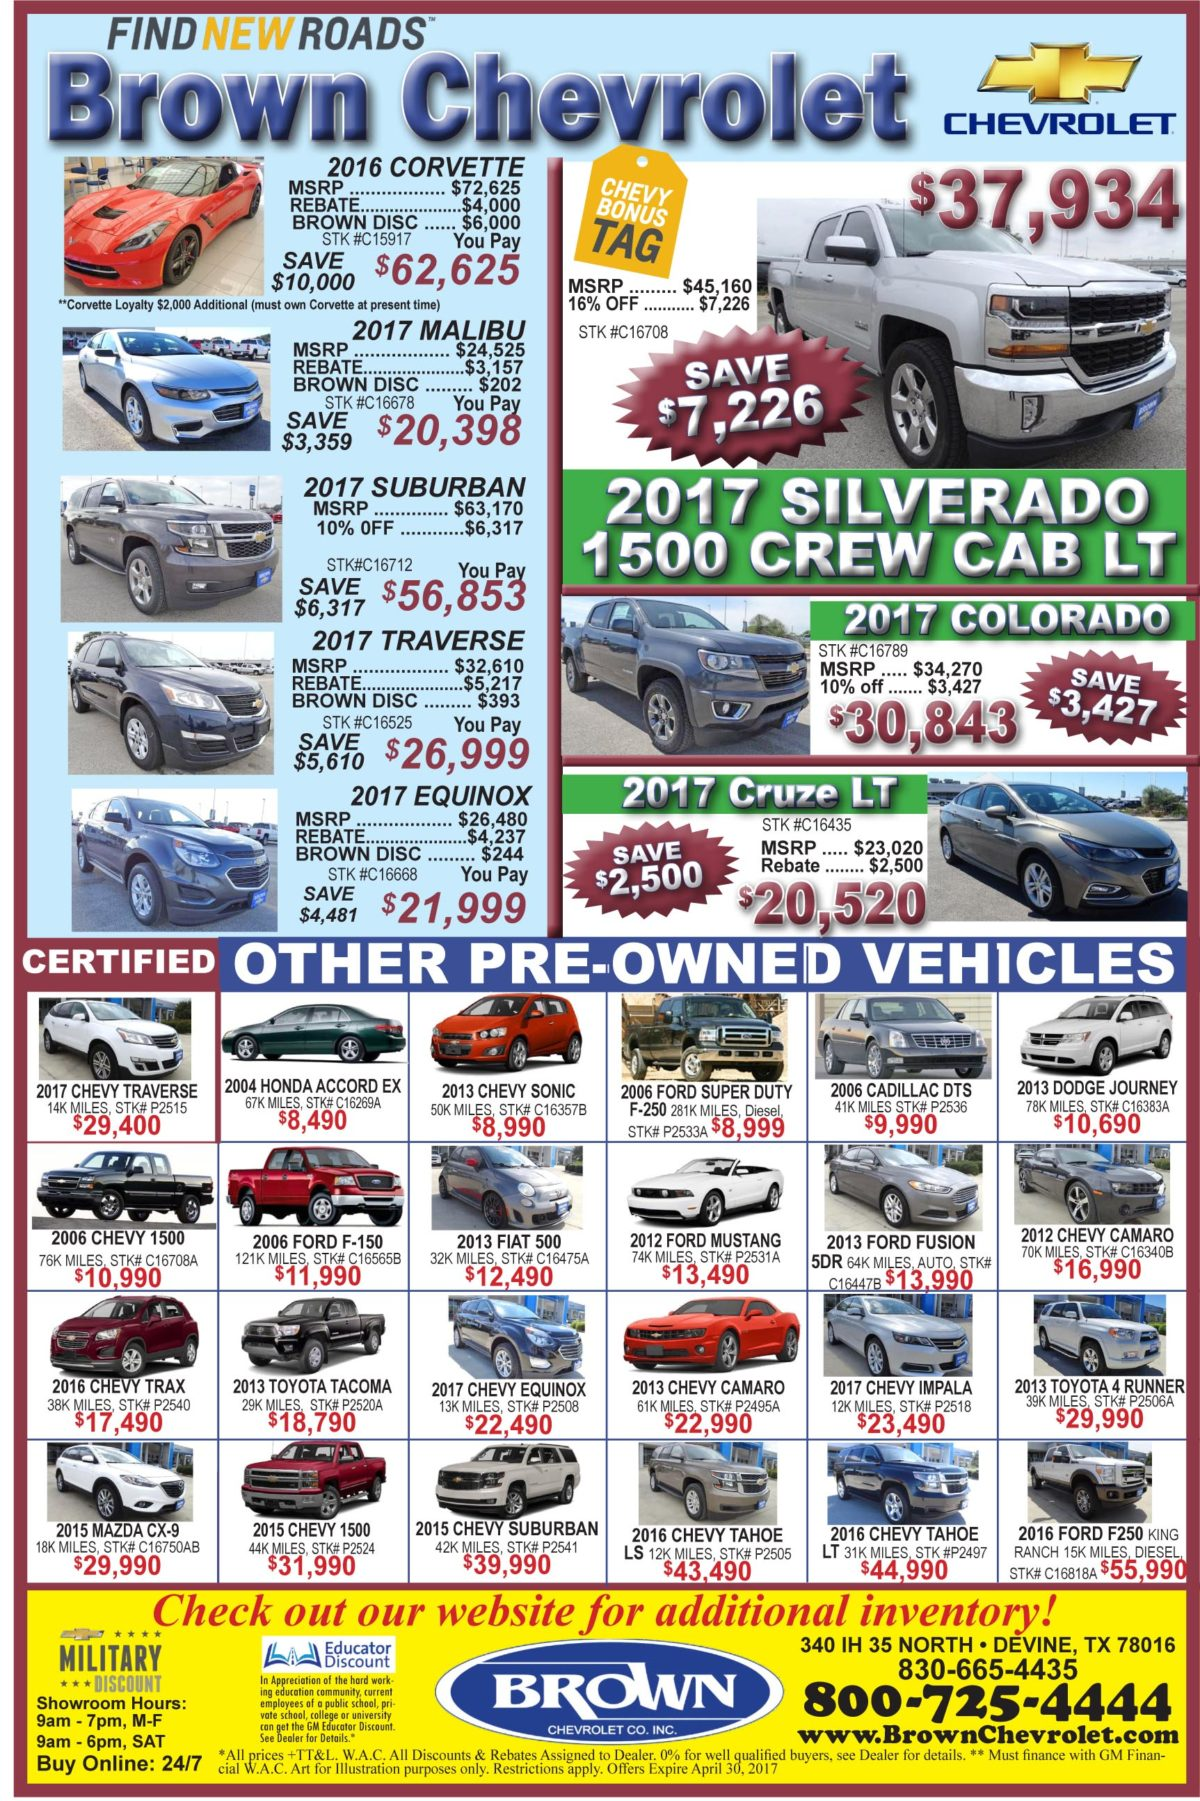 Brown Chevrolet deals for the week of 4-26-17